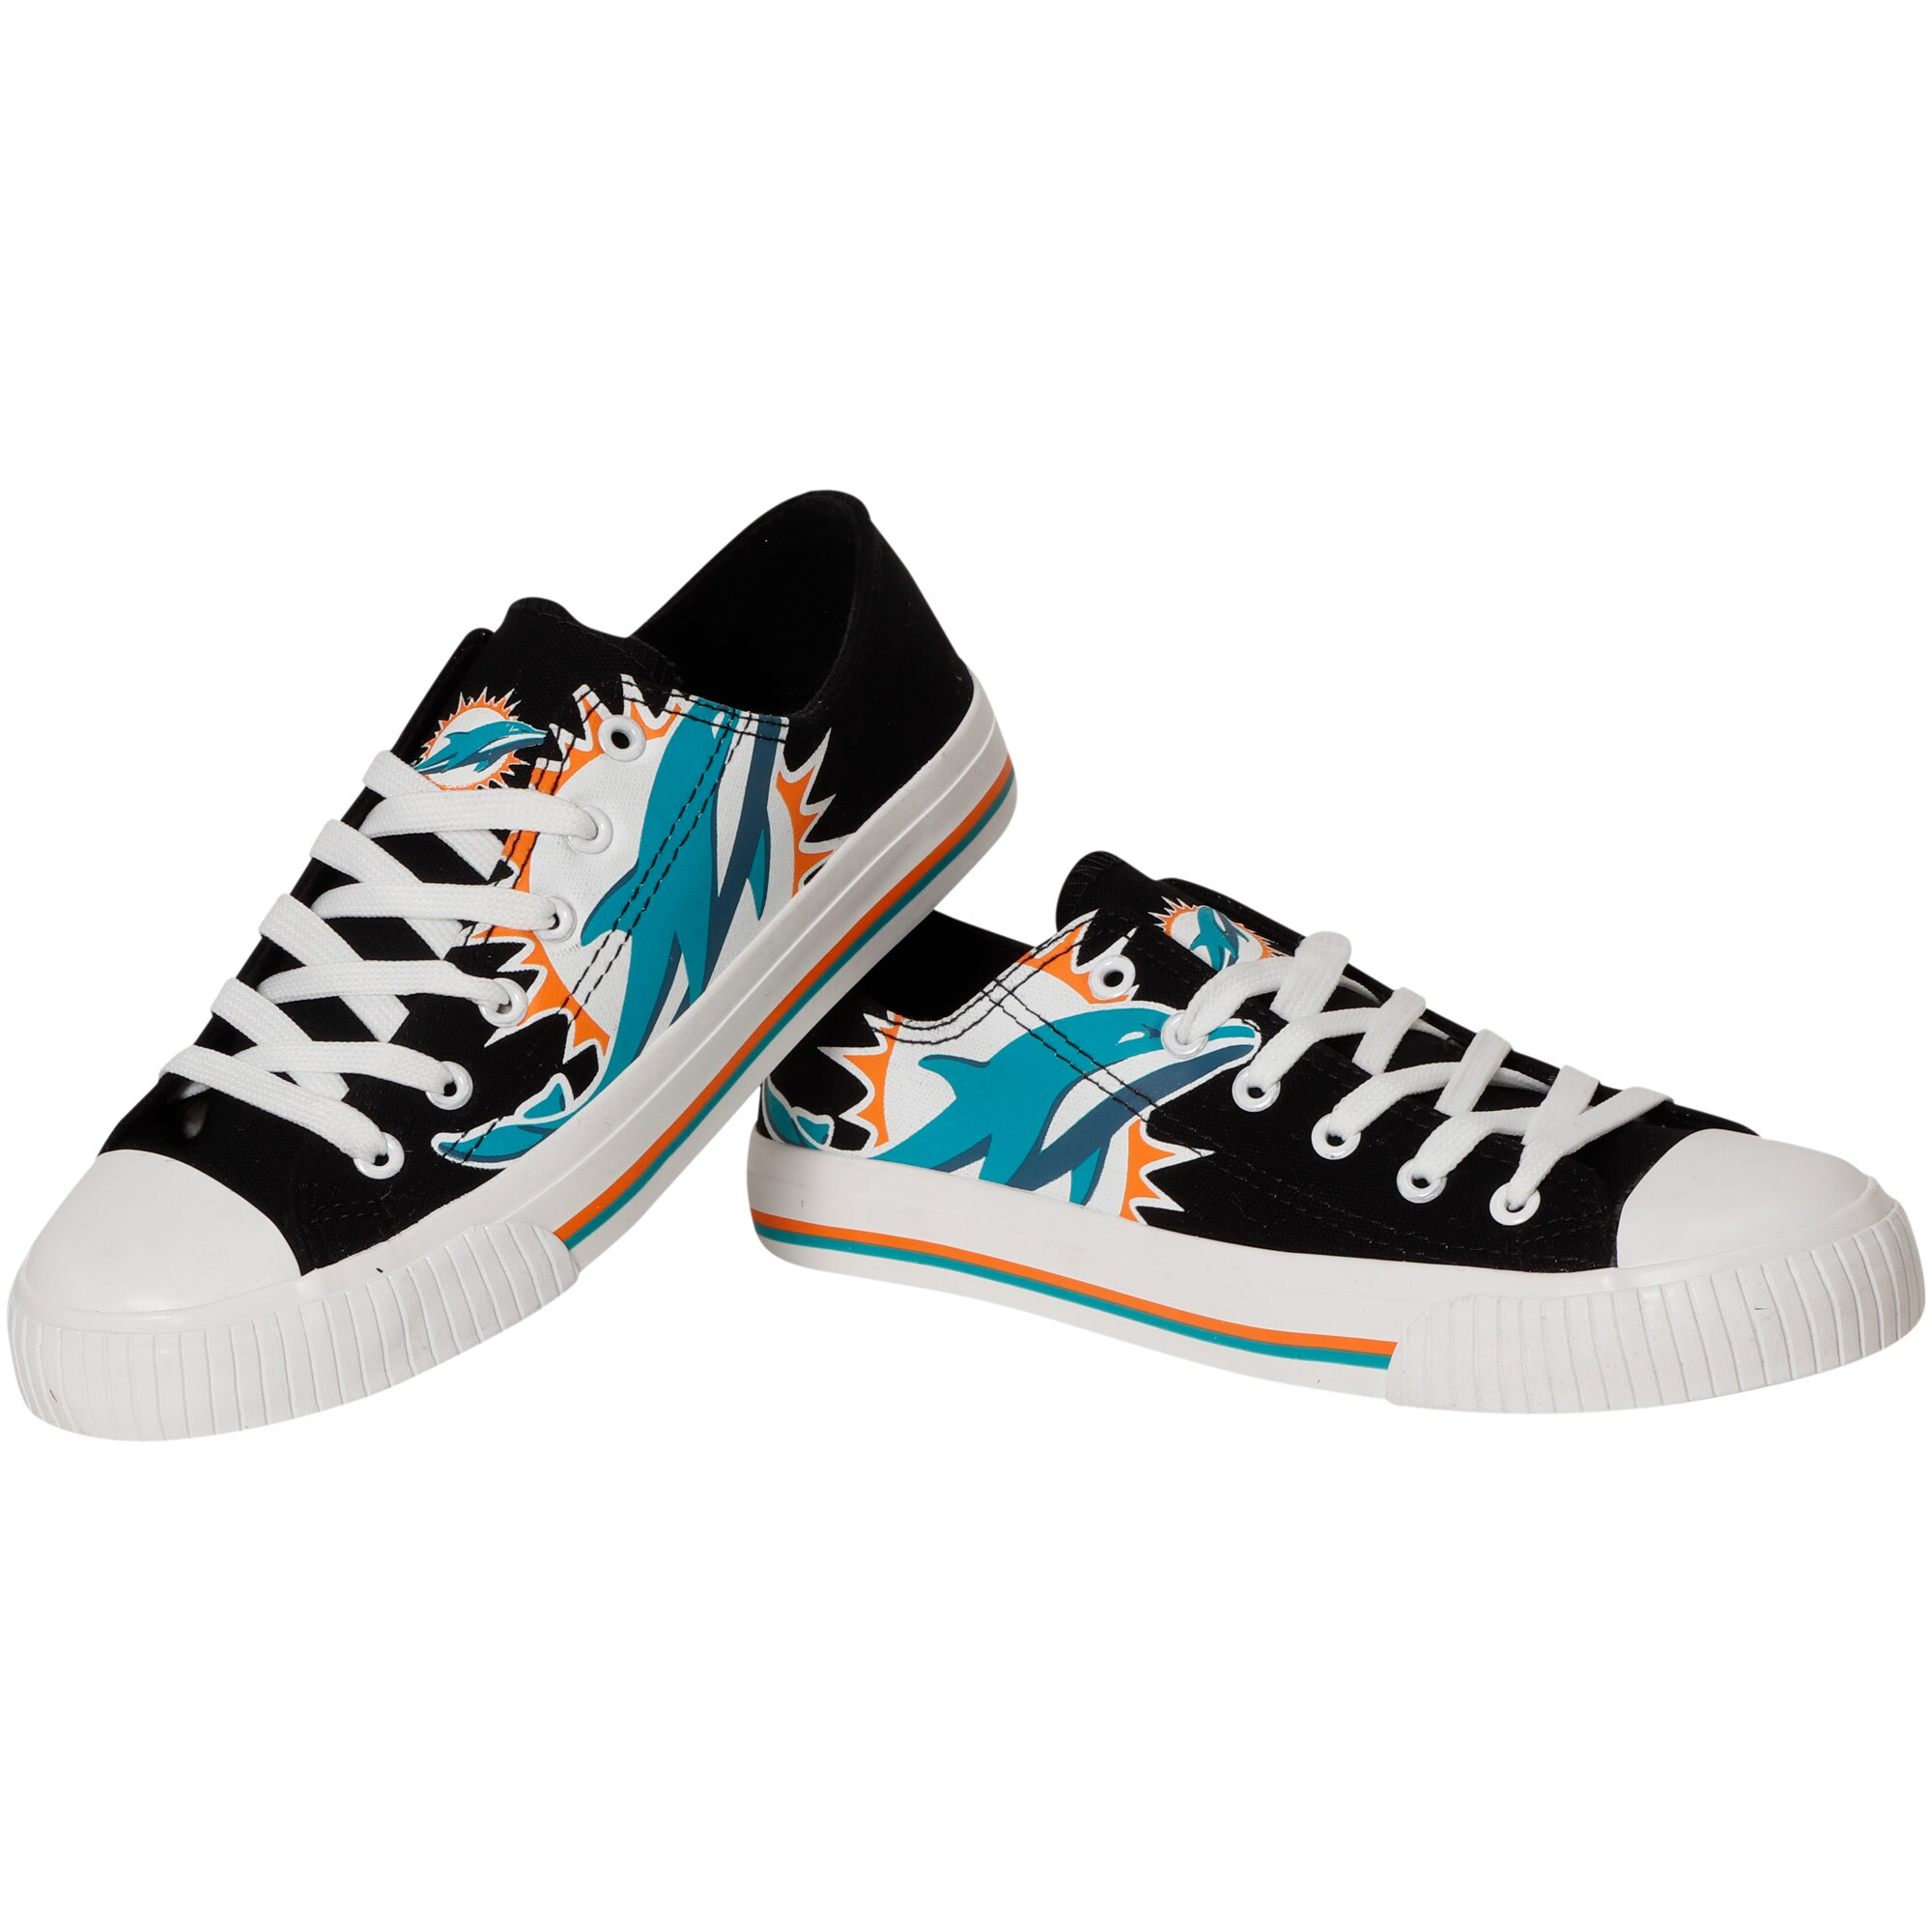 Miami Dolphins Big Logo Low Top Sneakers